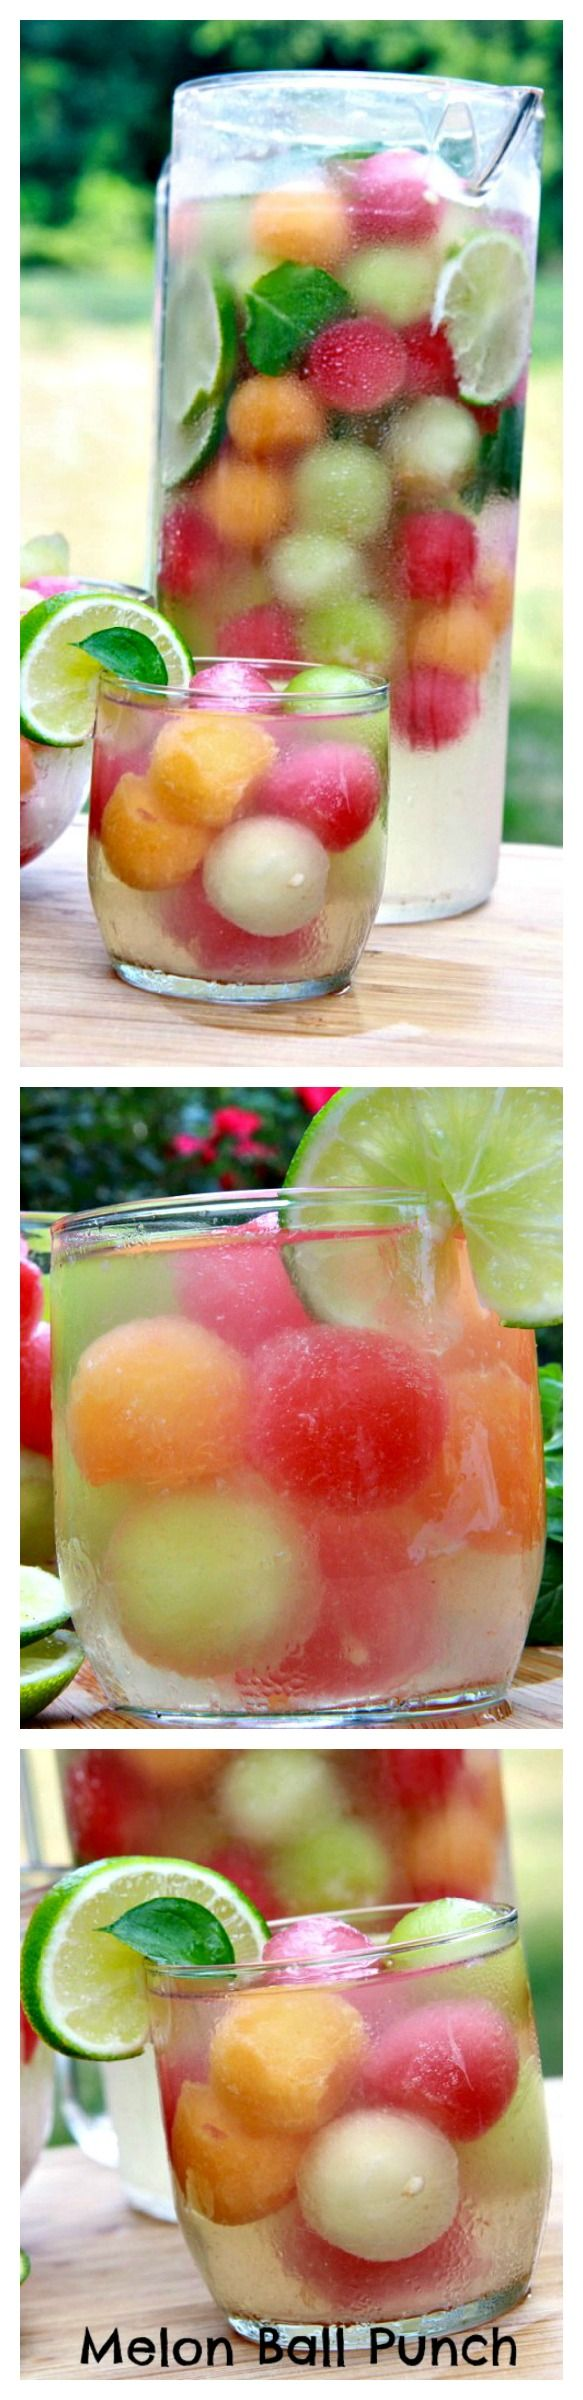 Melon ball ice!